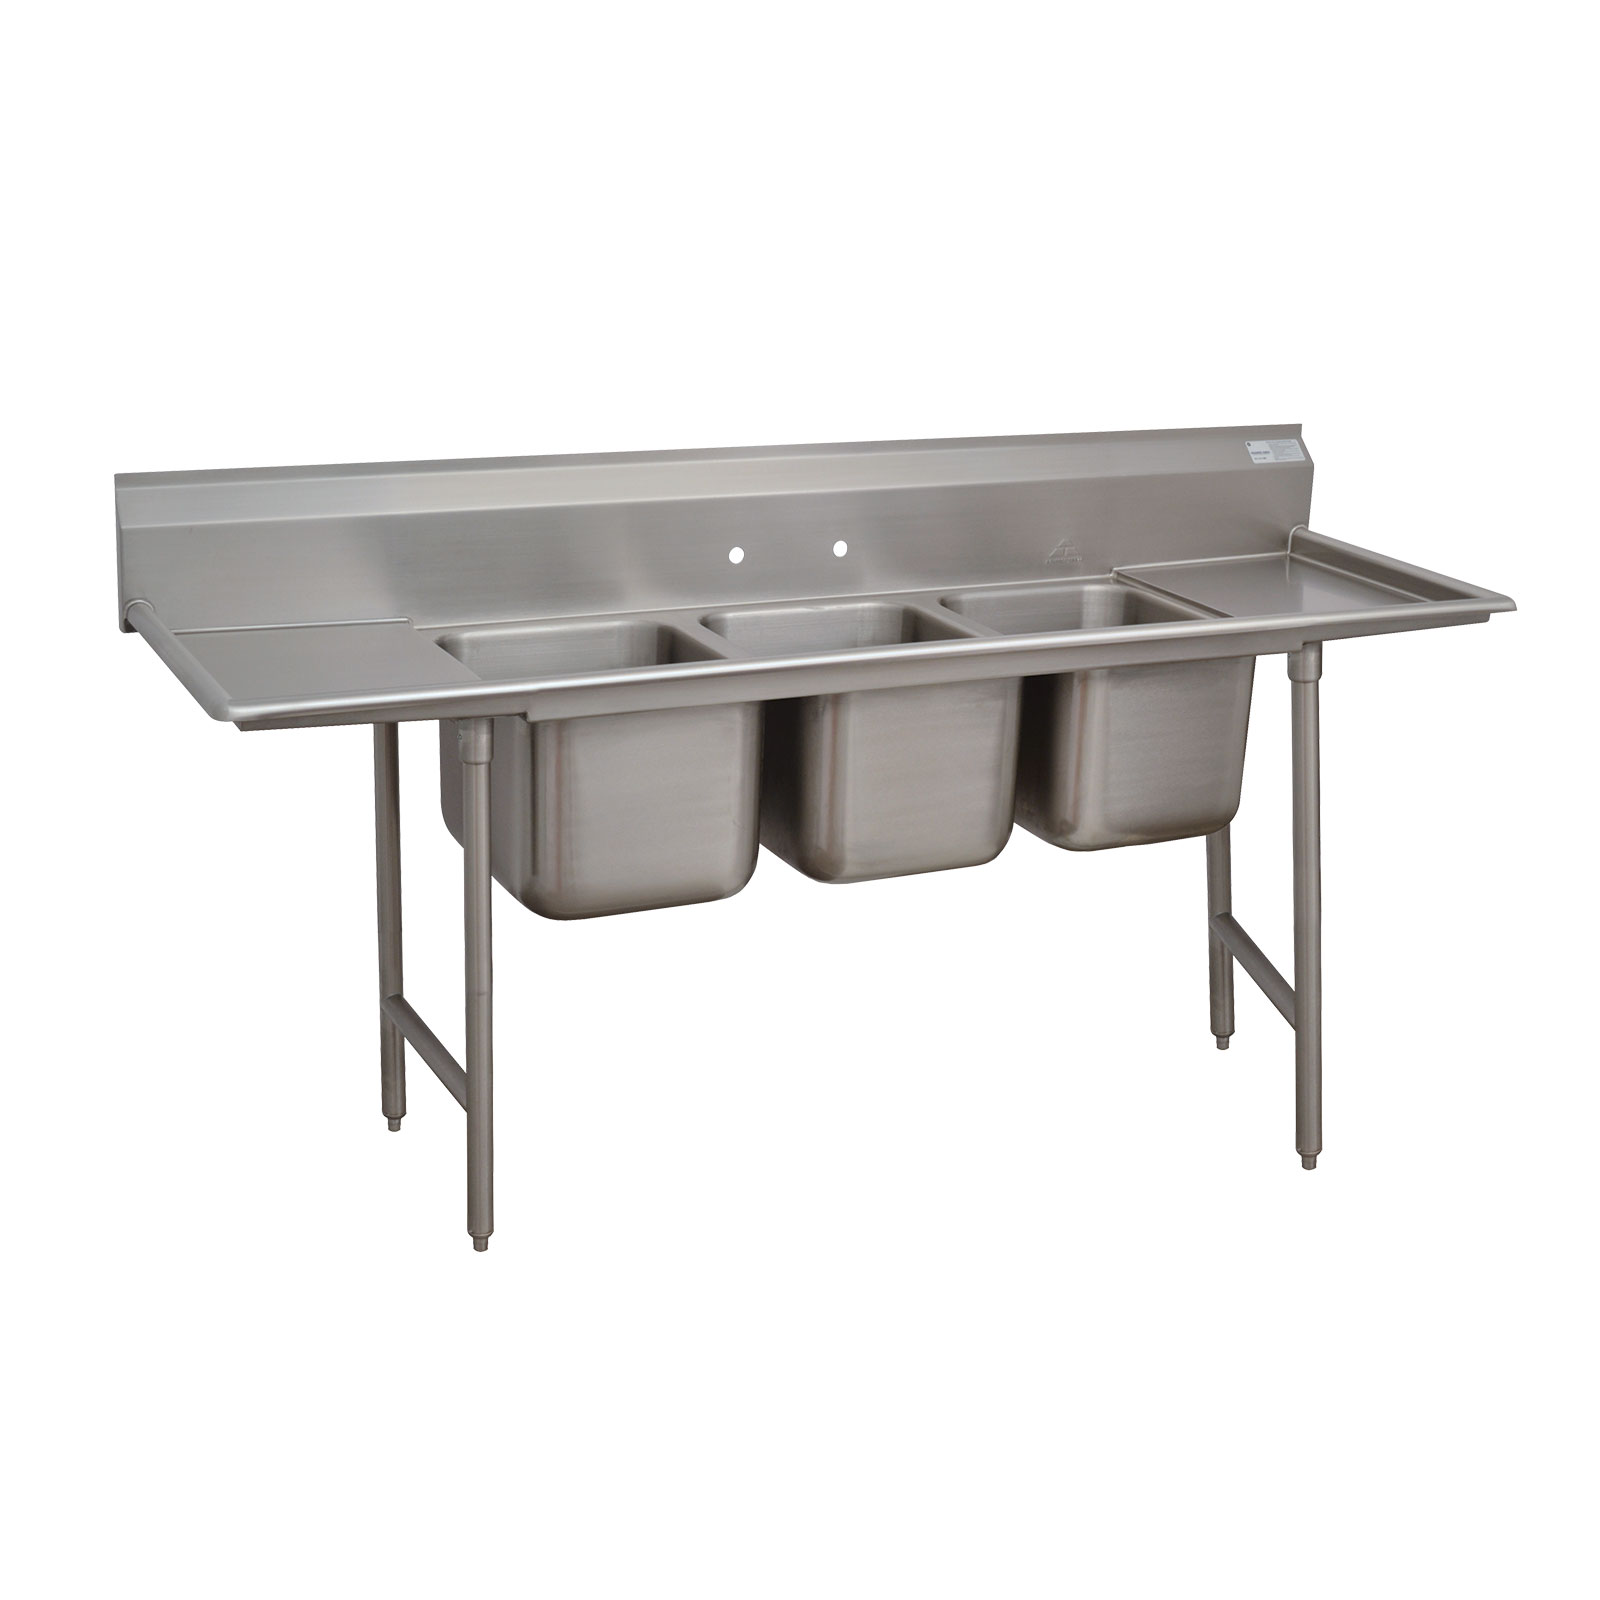 Advance Tabco T9-83-60-18RL sink, (3) three compartment